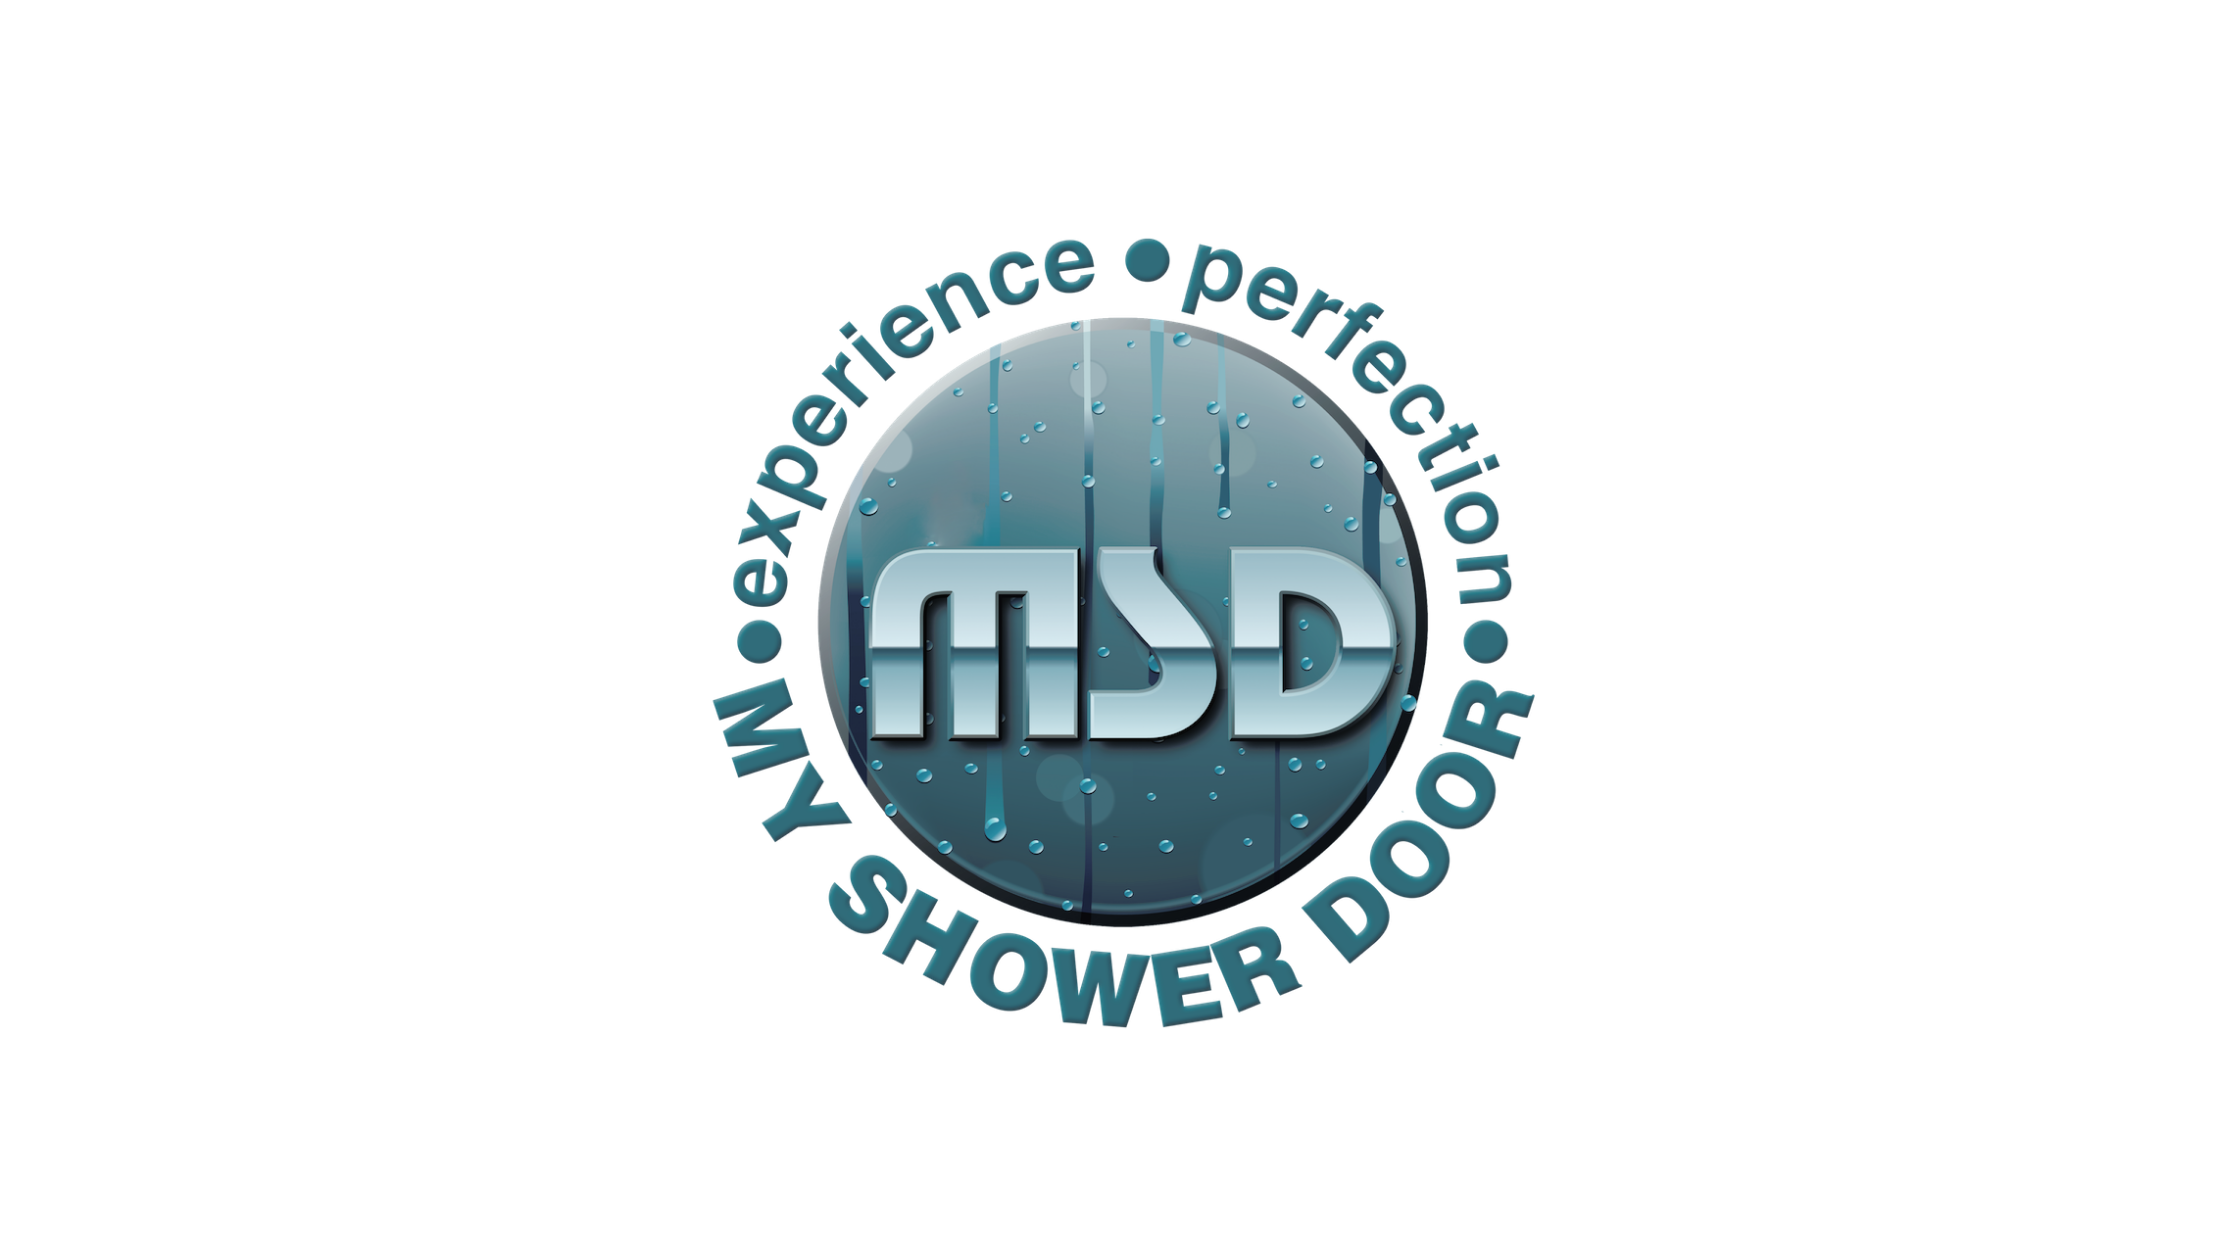 MY Shower Door and MY Shower Door – Tampa recognized by Inc. magazine as two of the fastest-growing companies in the nation